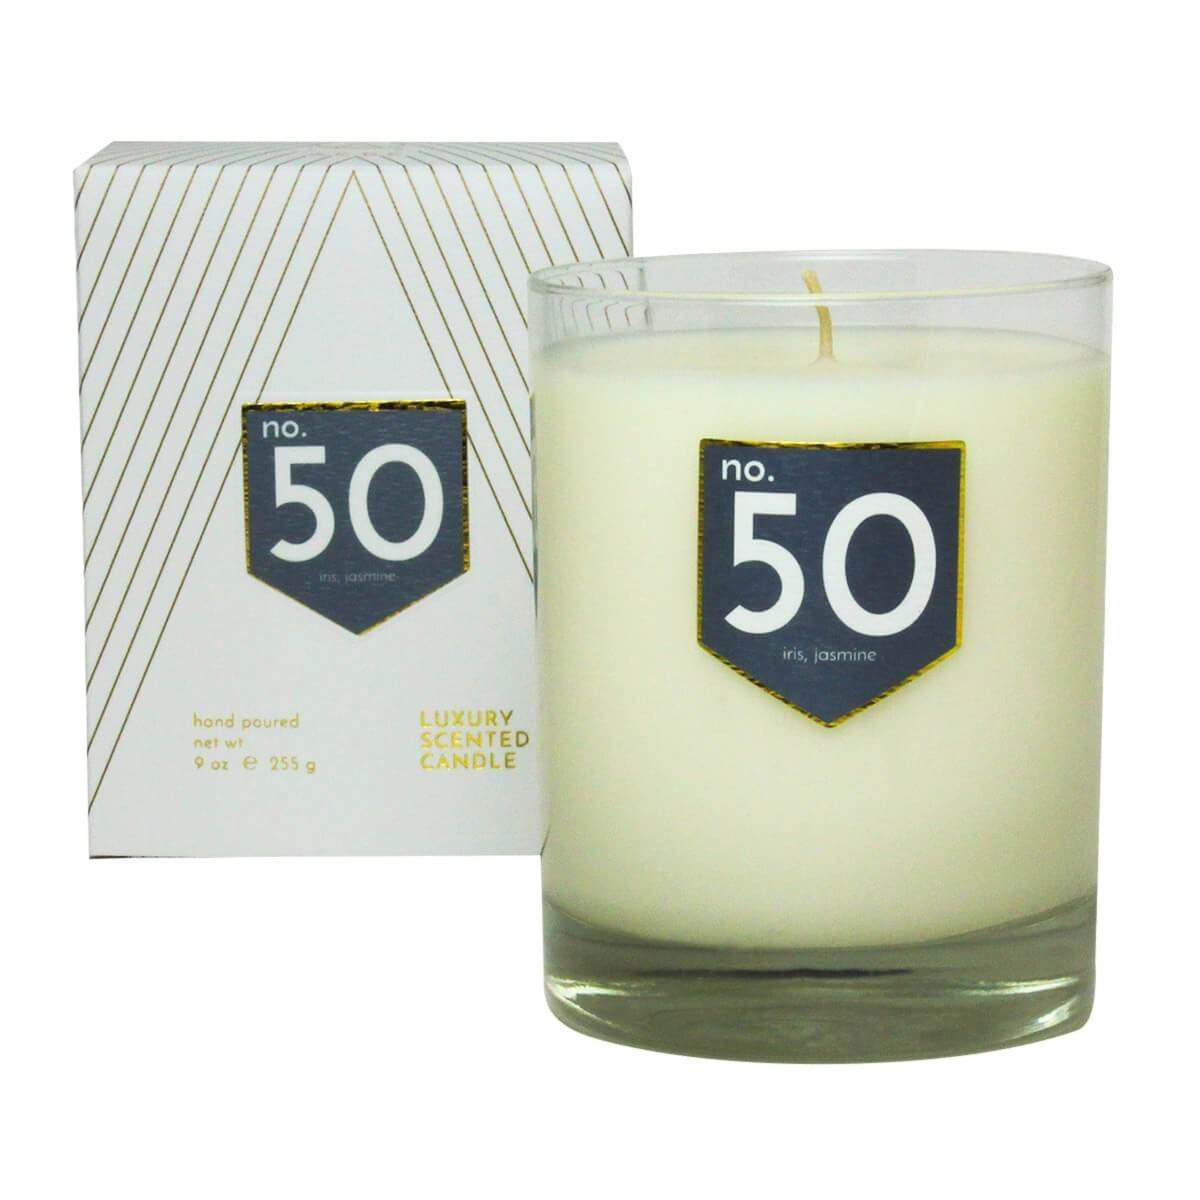 ACDC Candle Co Candles & Diffusers No. 50 Iris Jasmine Scented Soy Candle